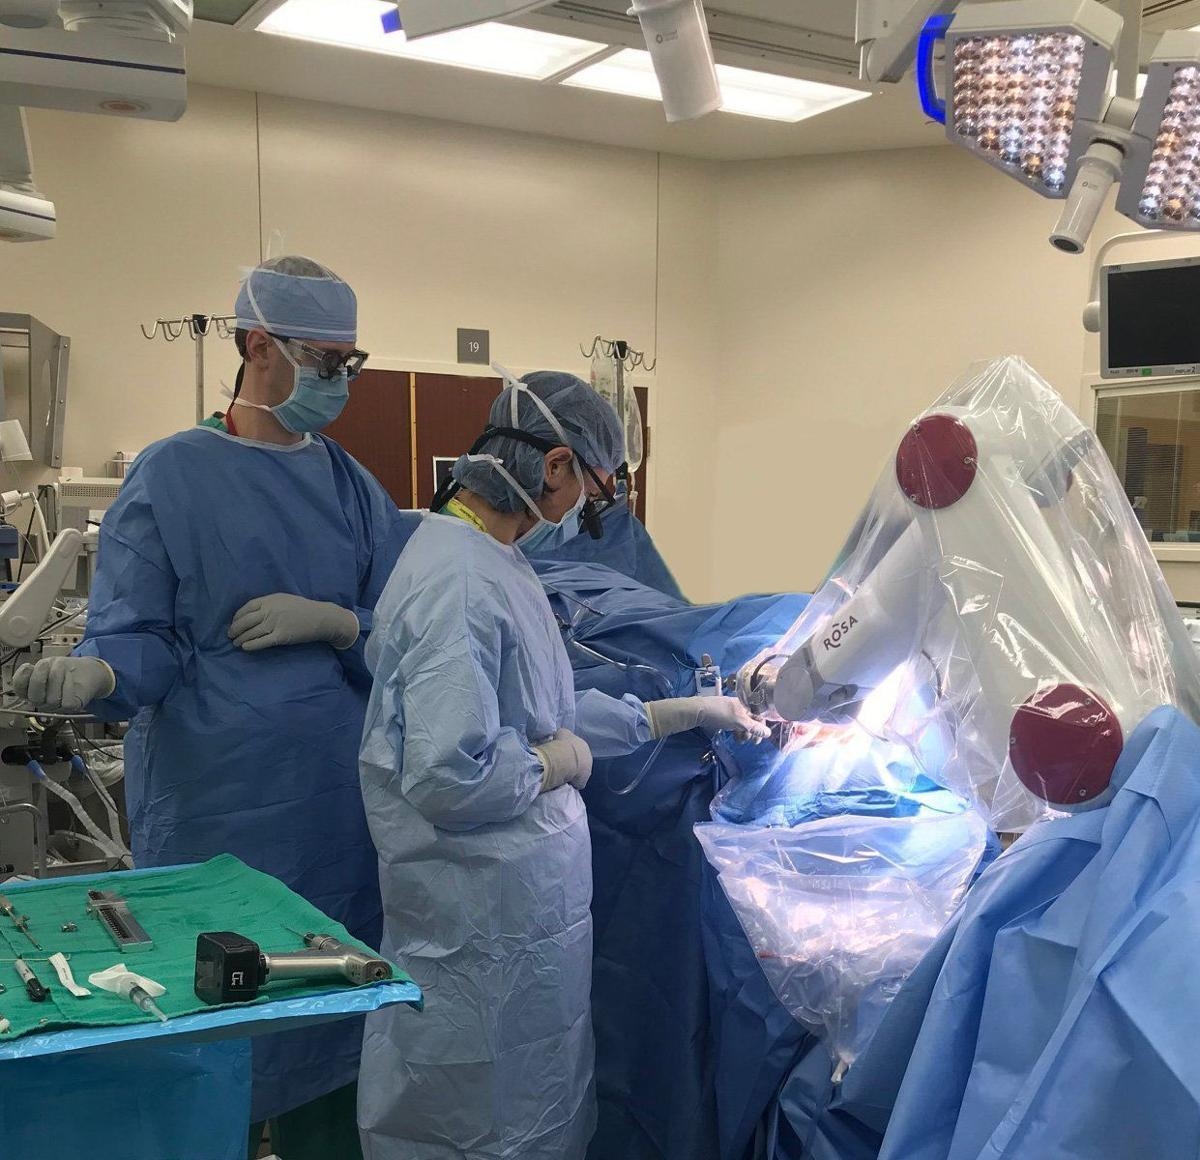 Aviva Abosch in surgery